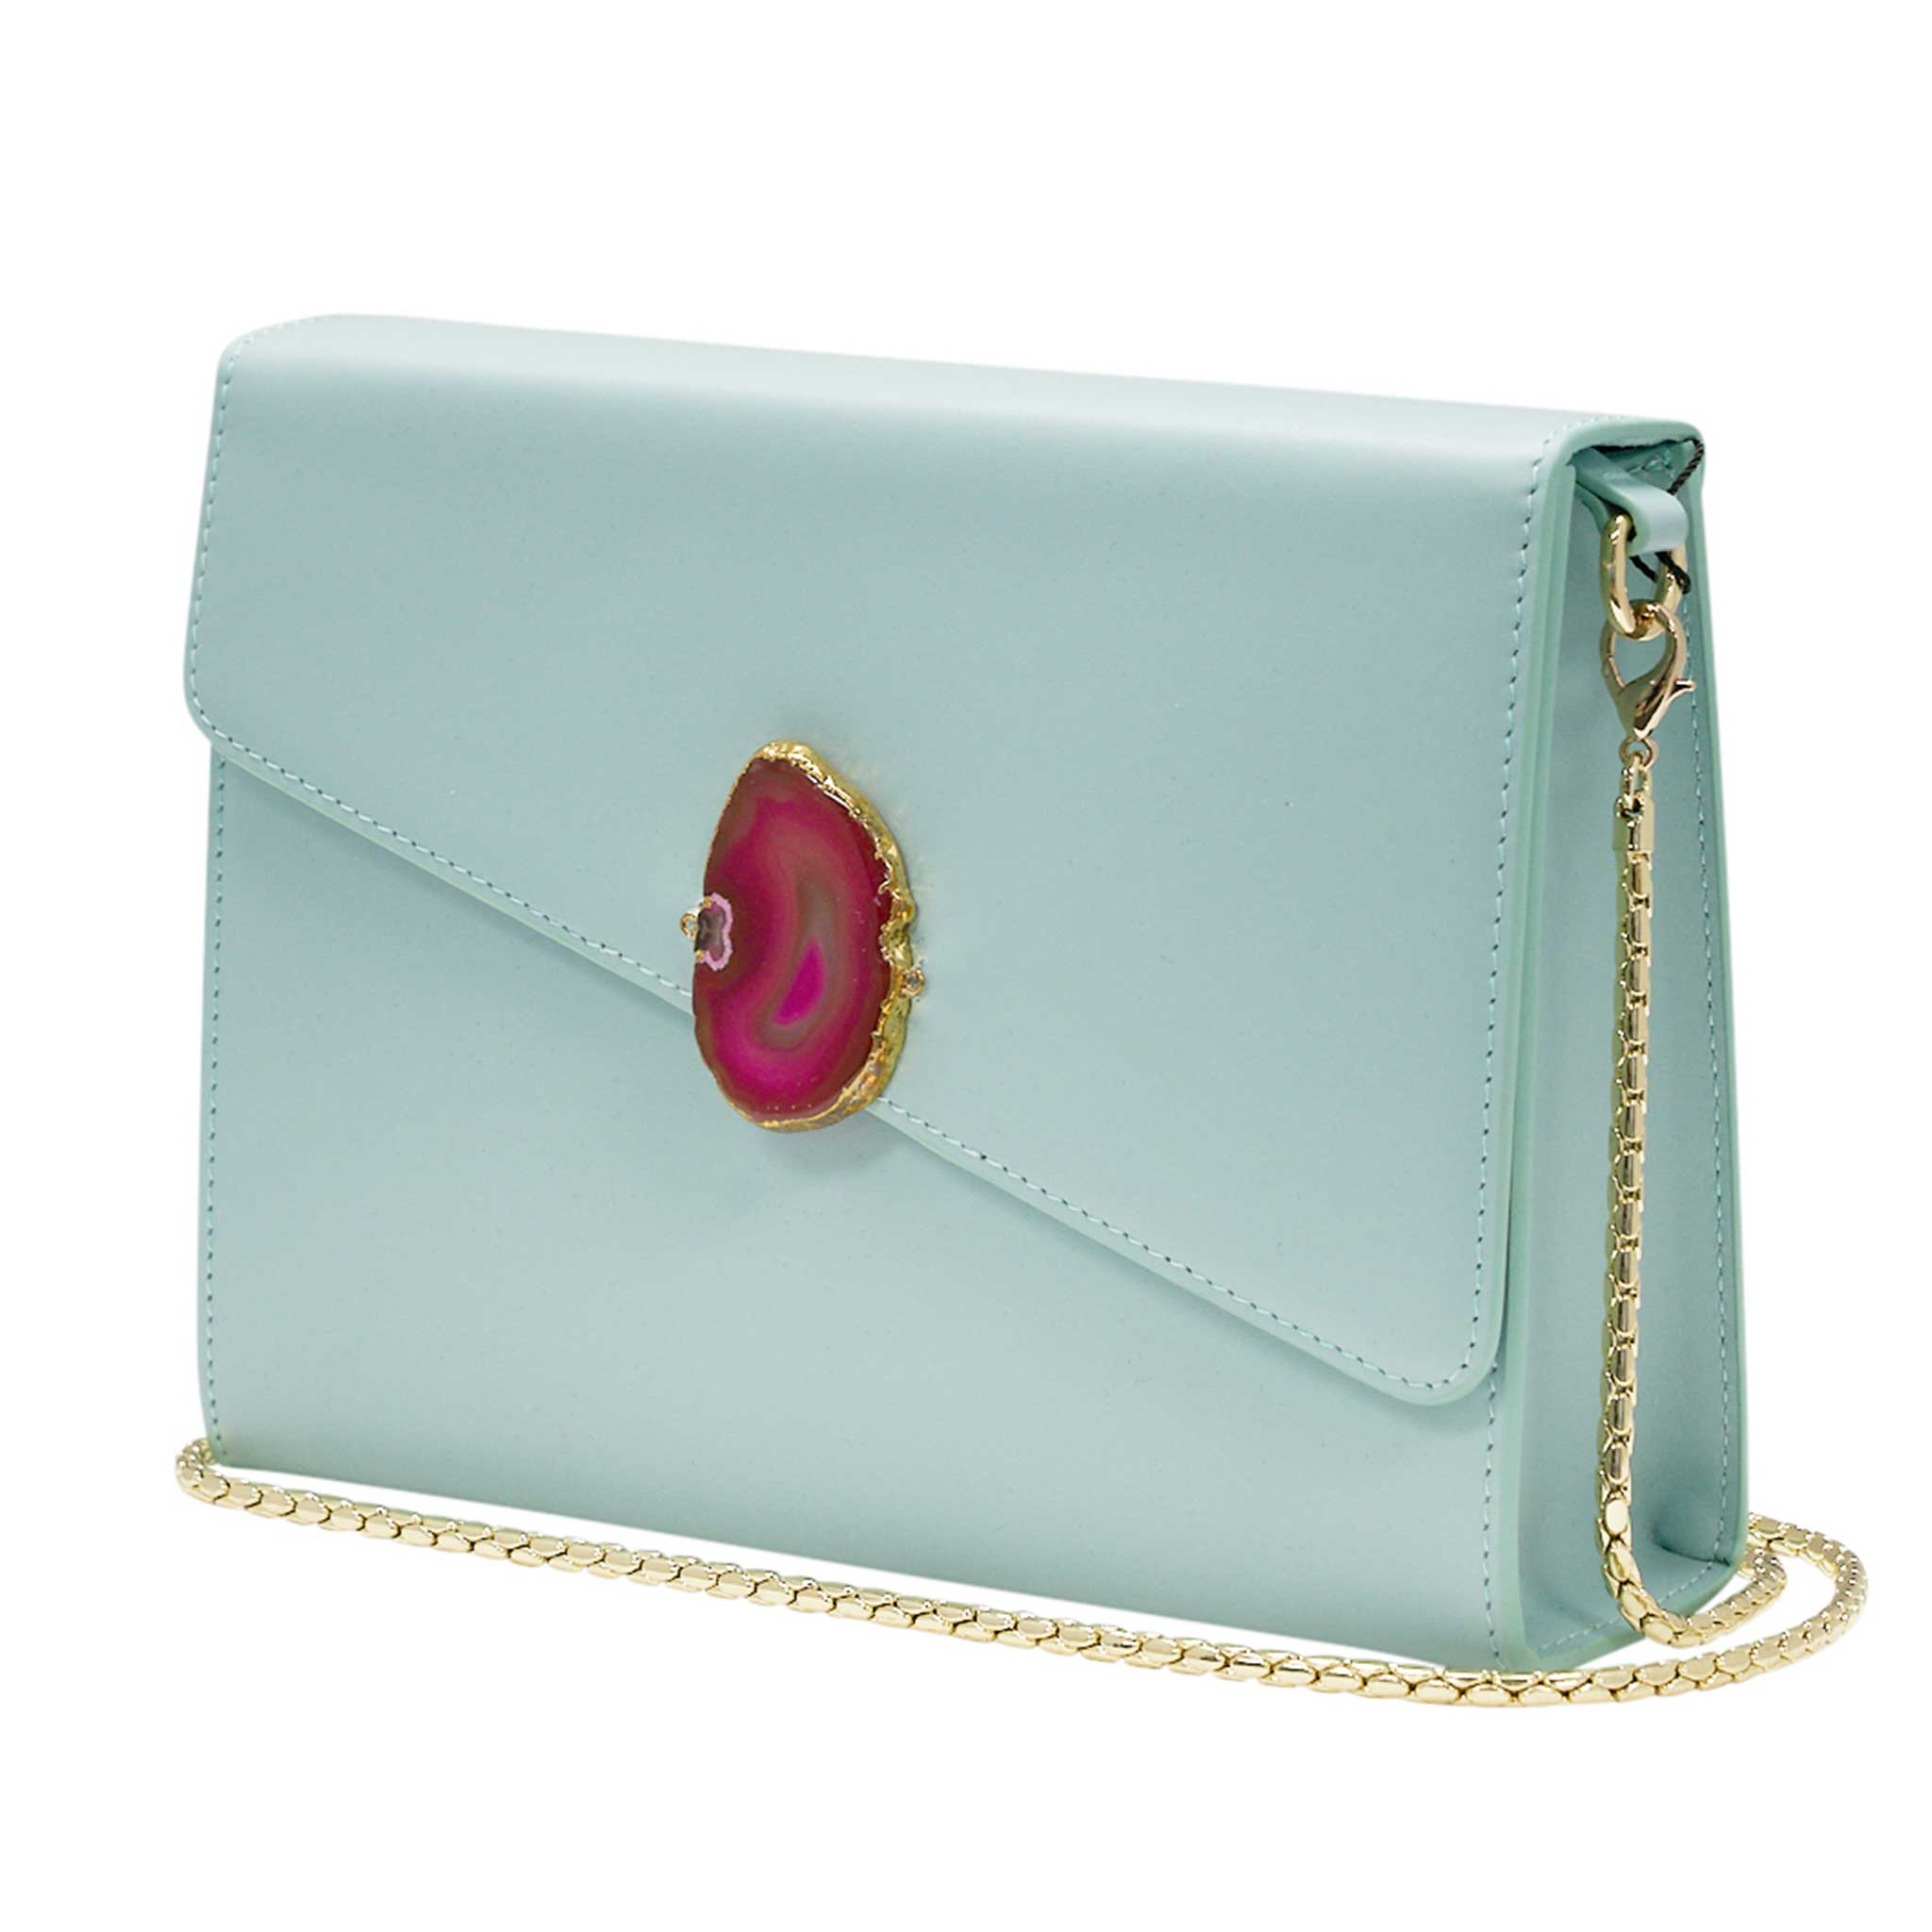 LOVED BAG - MOONSTONE WHITE LEATHER WITH PINK AGATE - 1.02.005.058